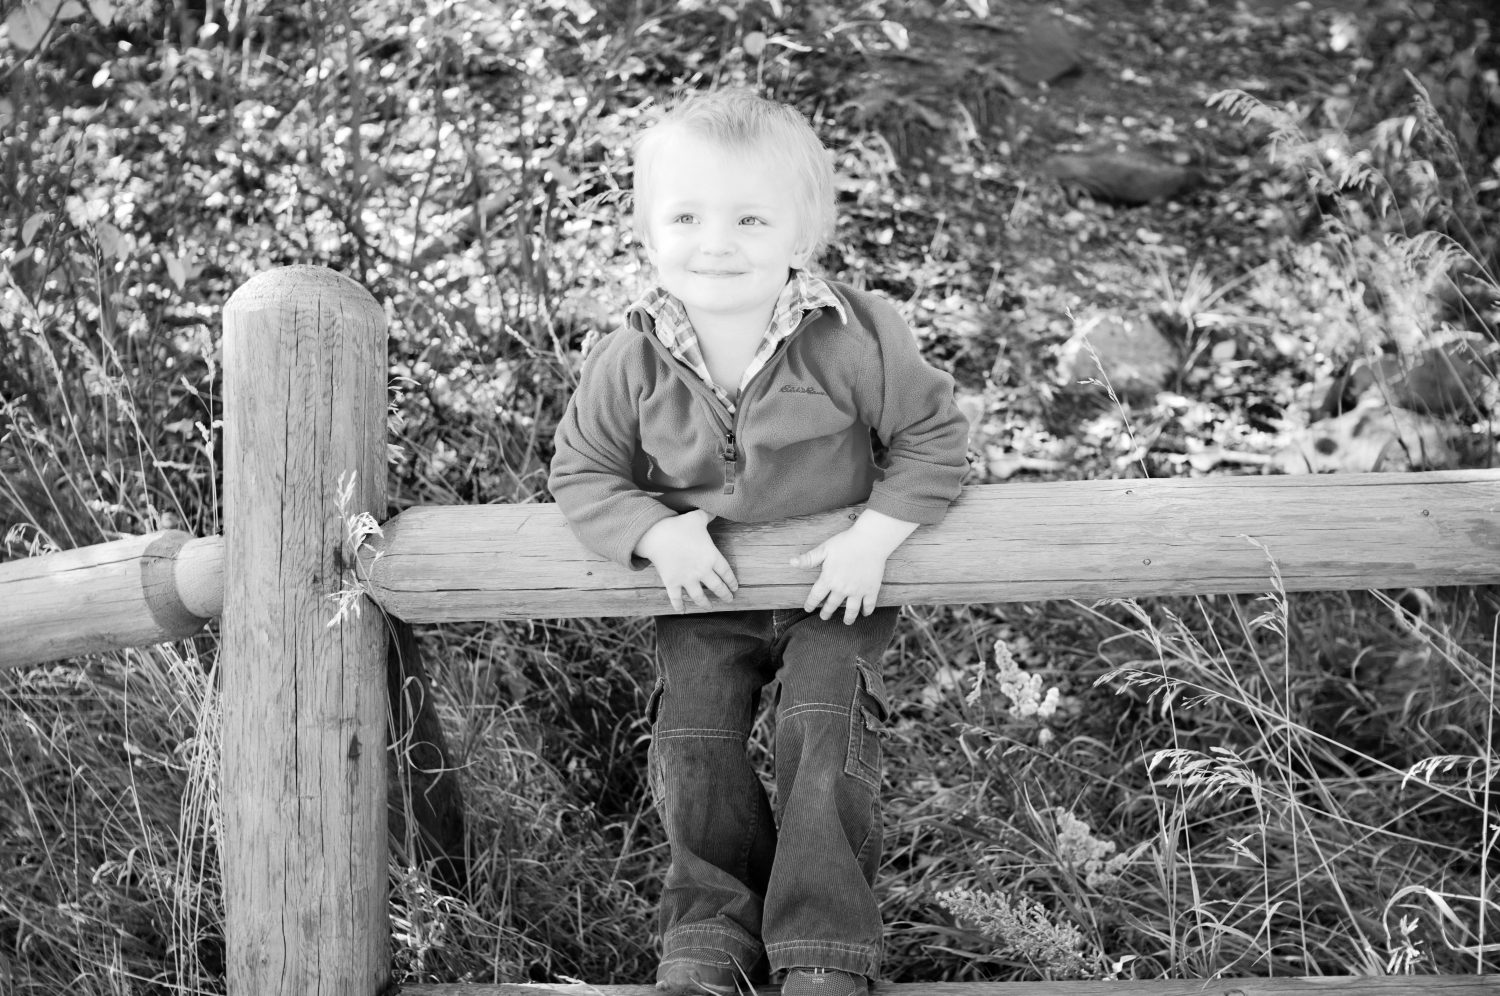 black and white image of little boy standing on a wooden fence smiling